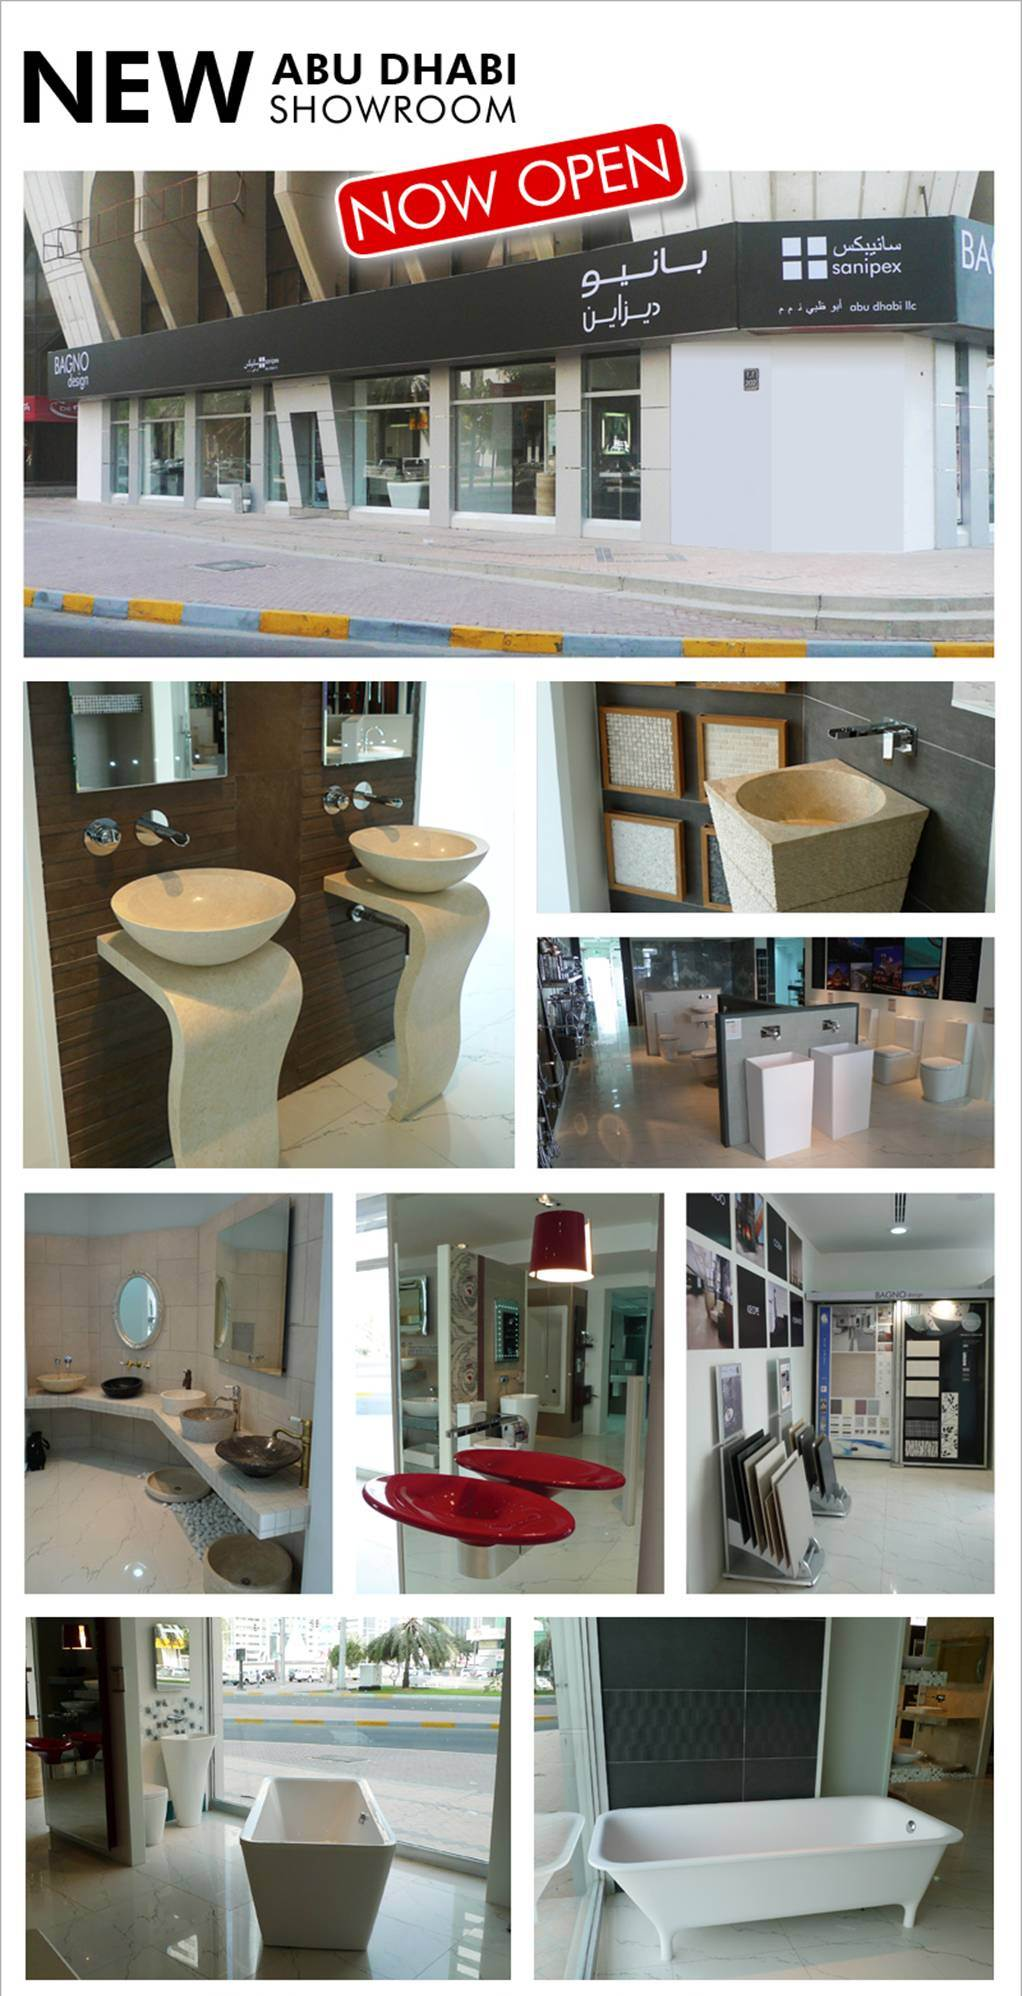 Bagno design showroom in abu dhabi new exclusive for Showroom bagno